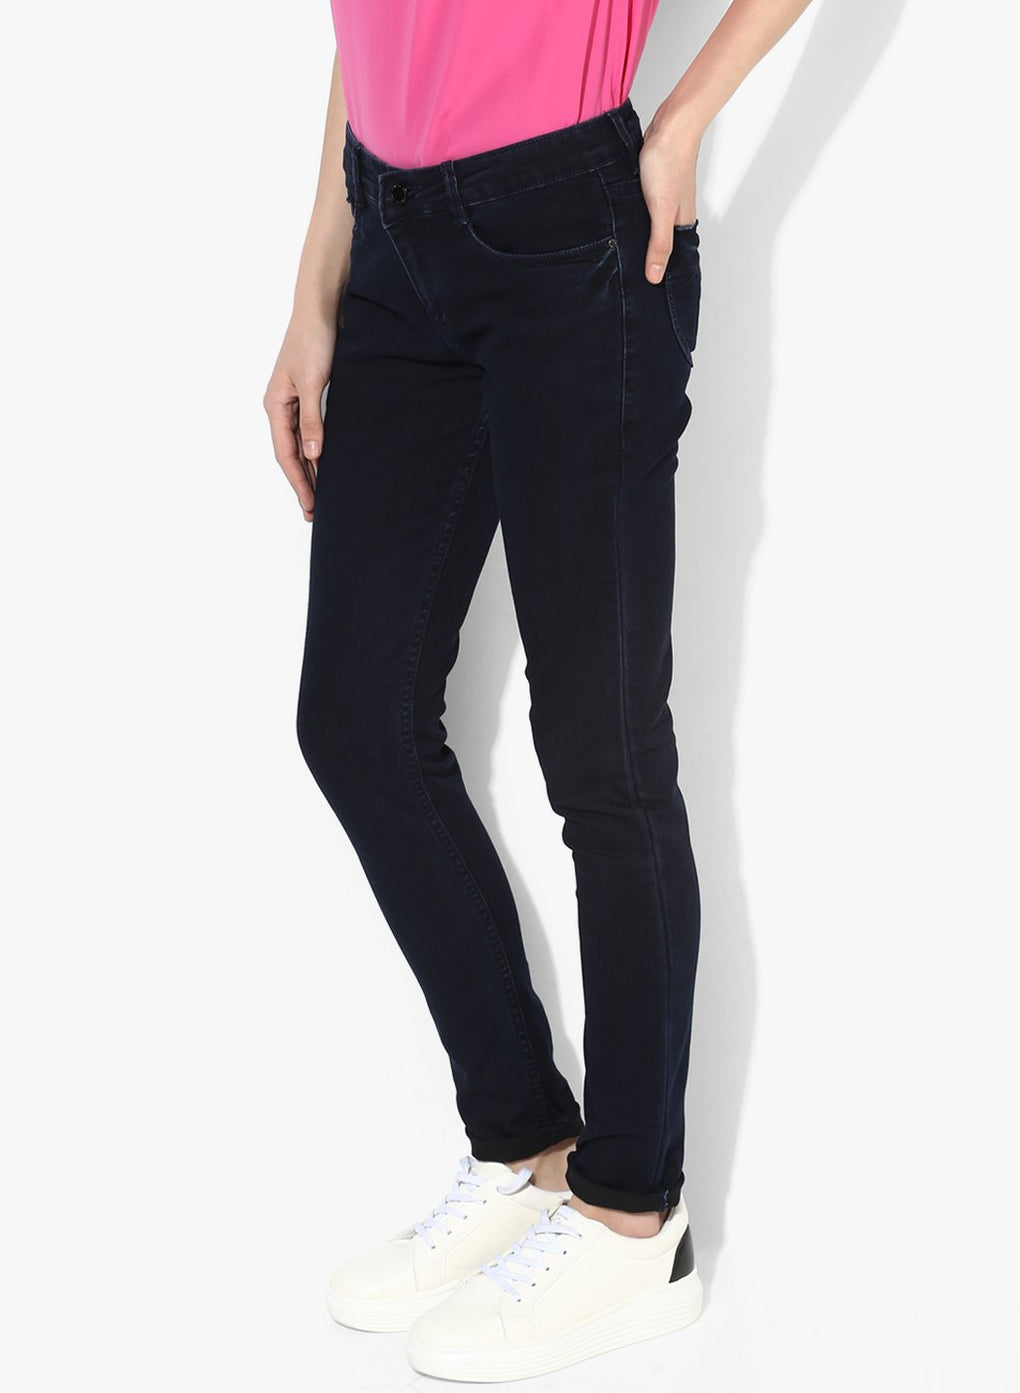 miss forever navy blue slim fit jeans